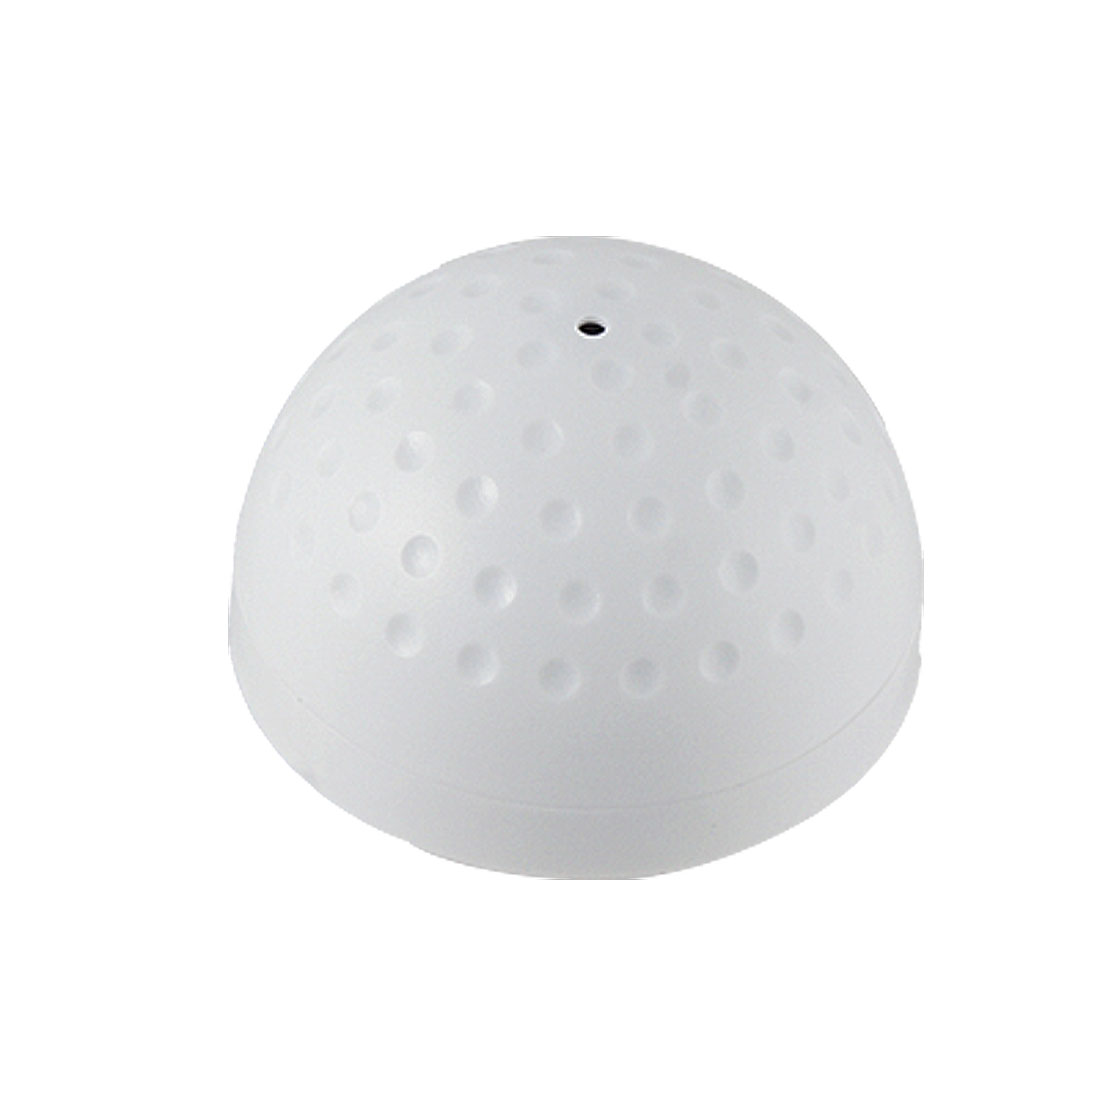 White Half Ball Pick Up Sound Monitor for CCTV System